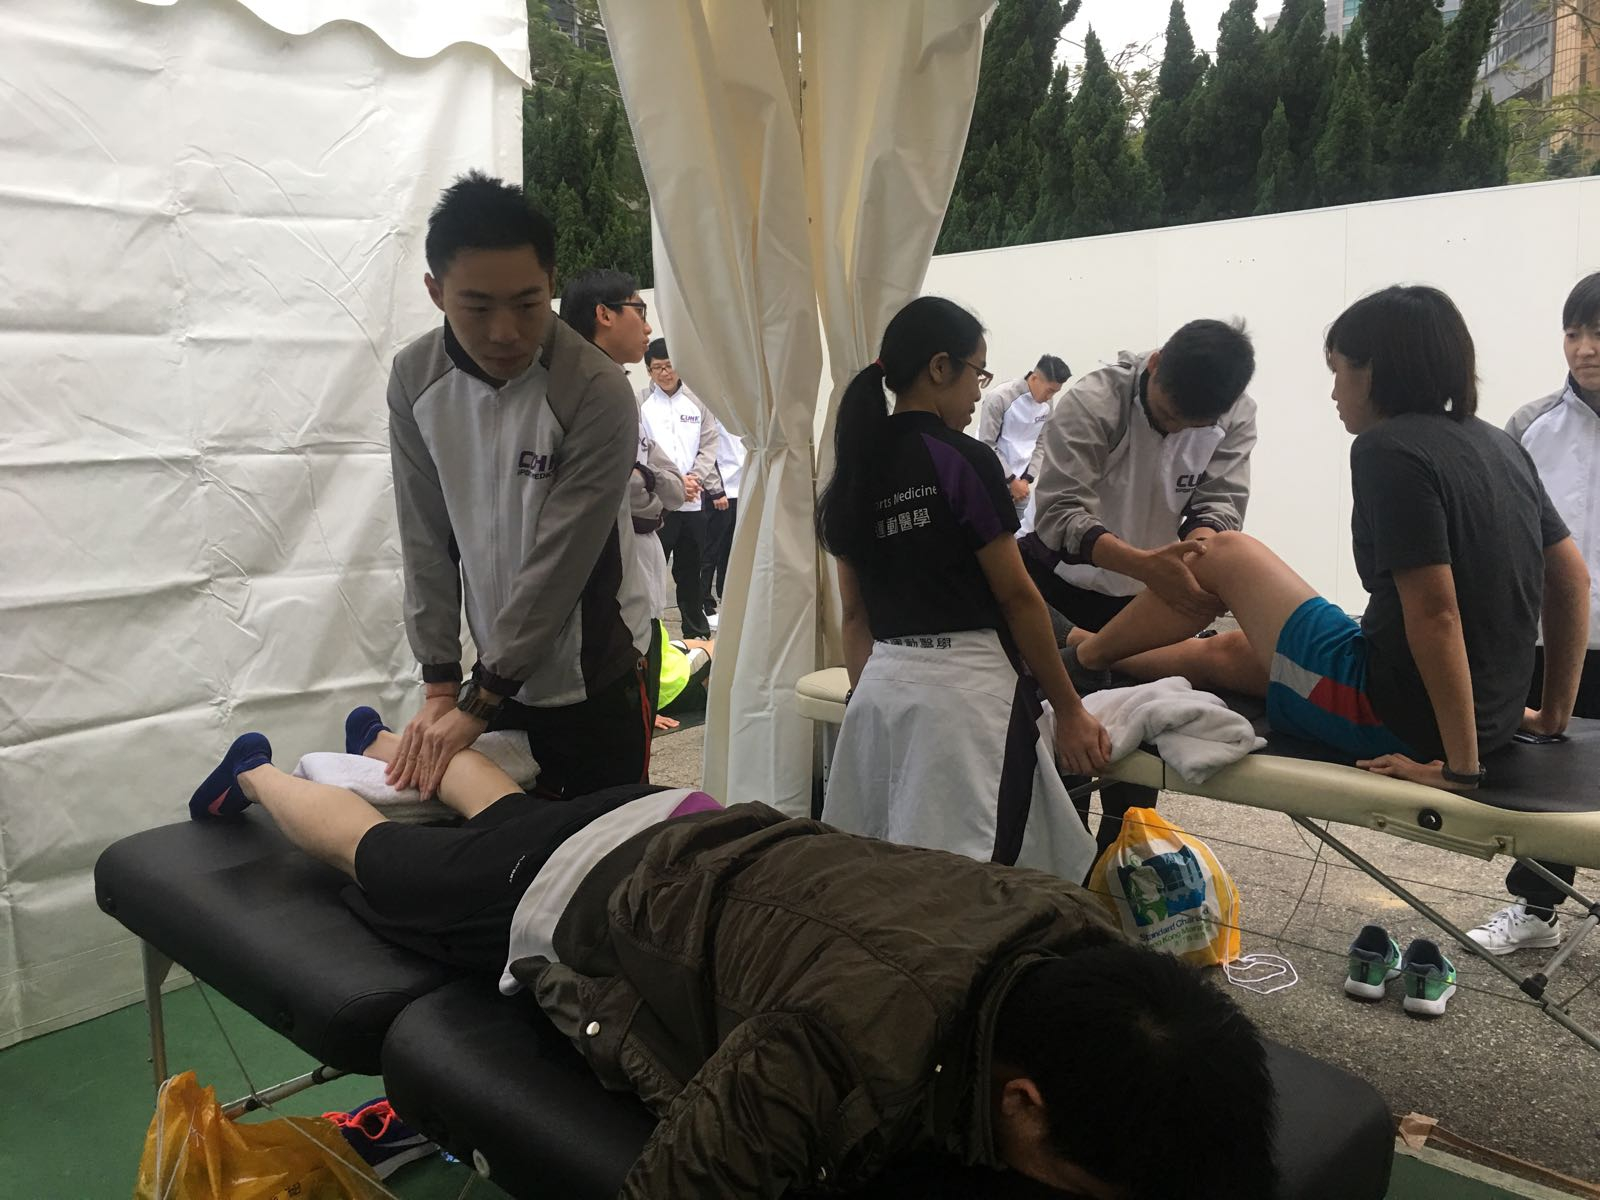 On-field physiotherapy service provided by the CUHK Sports Medicine Team